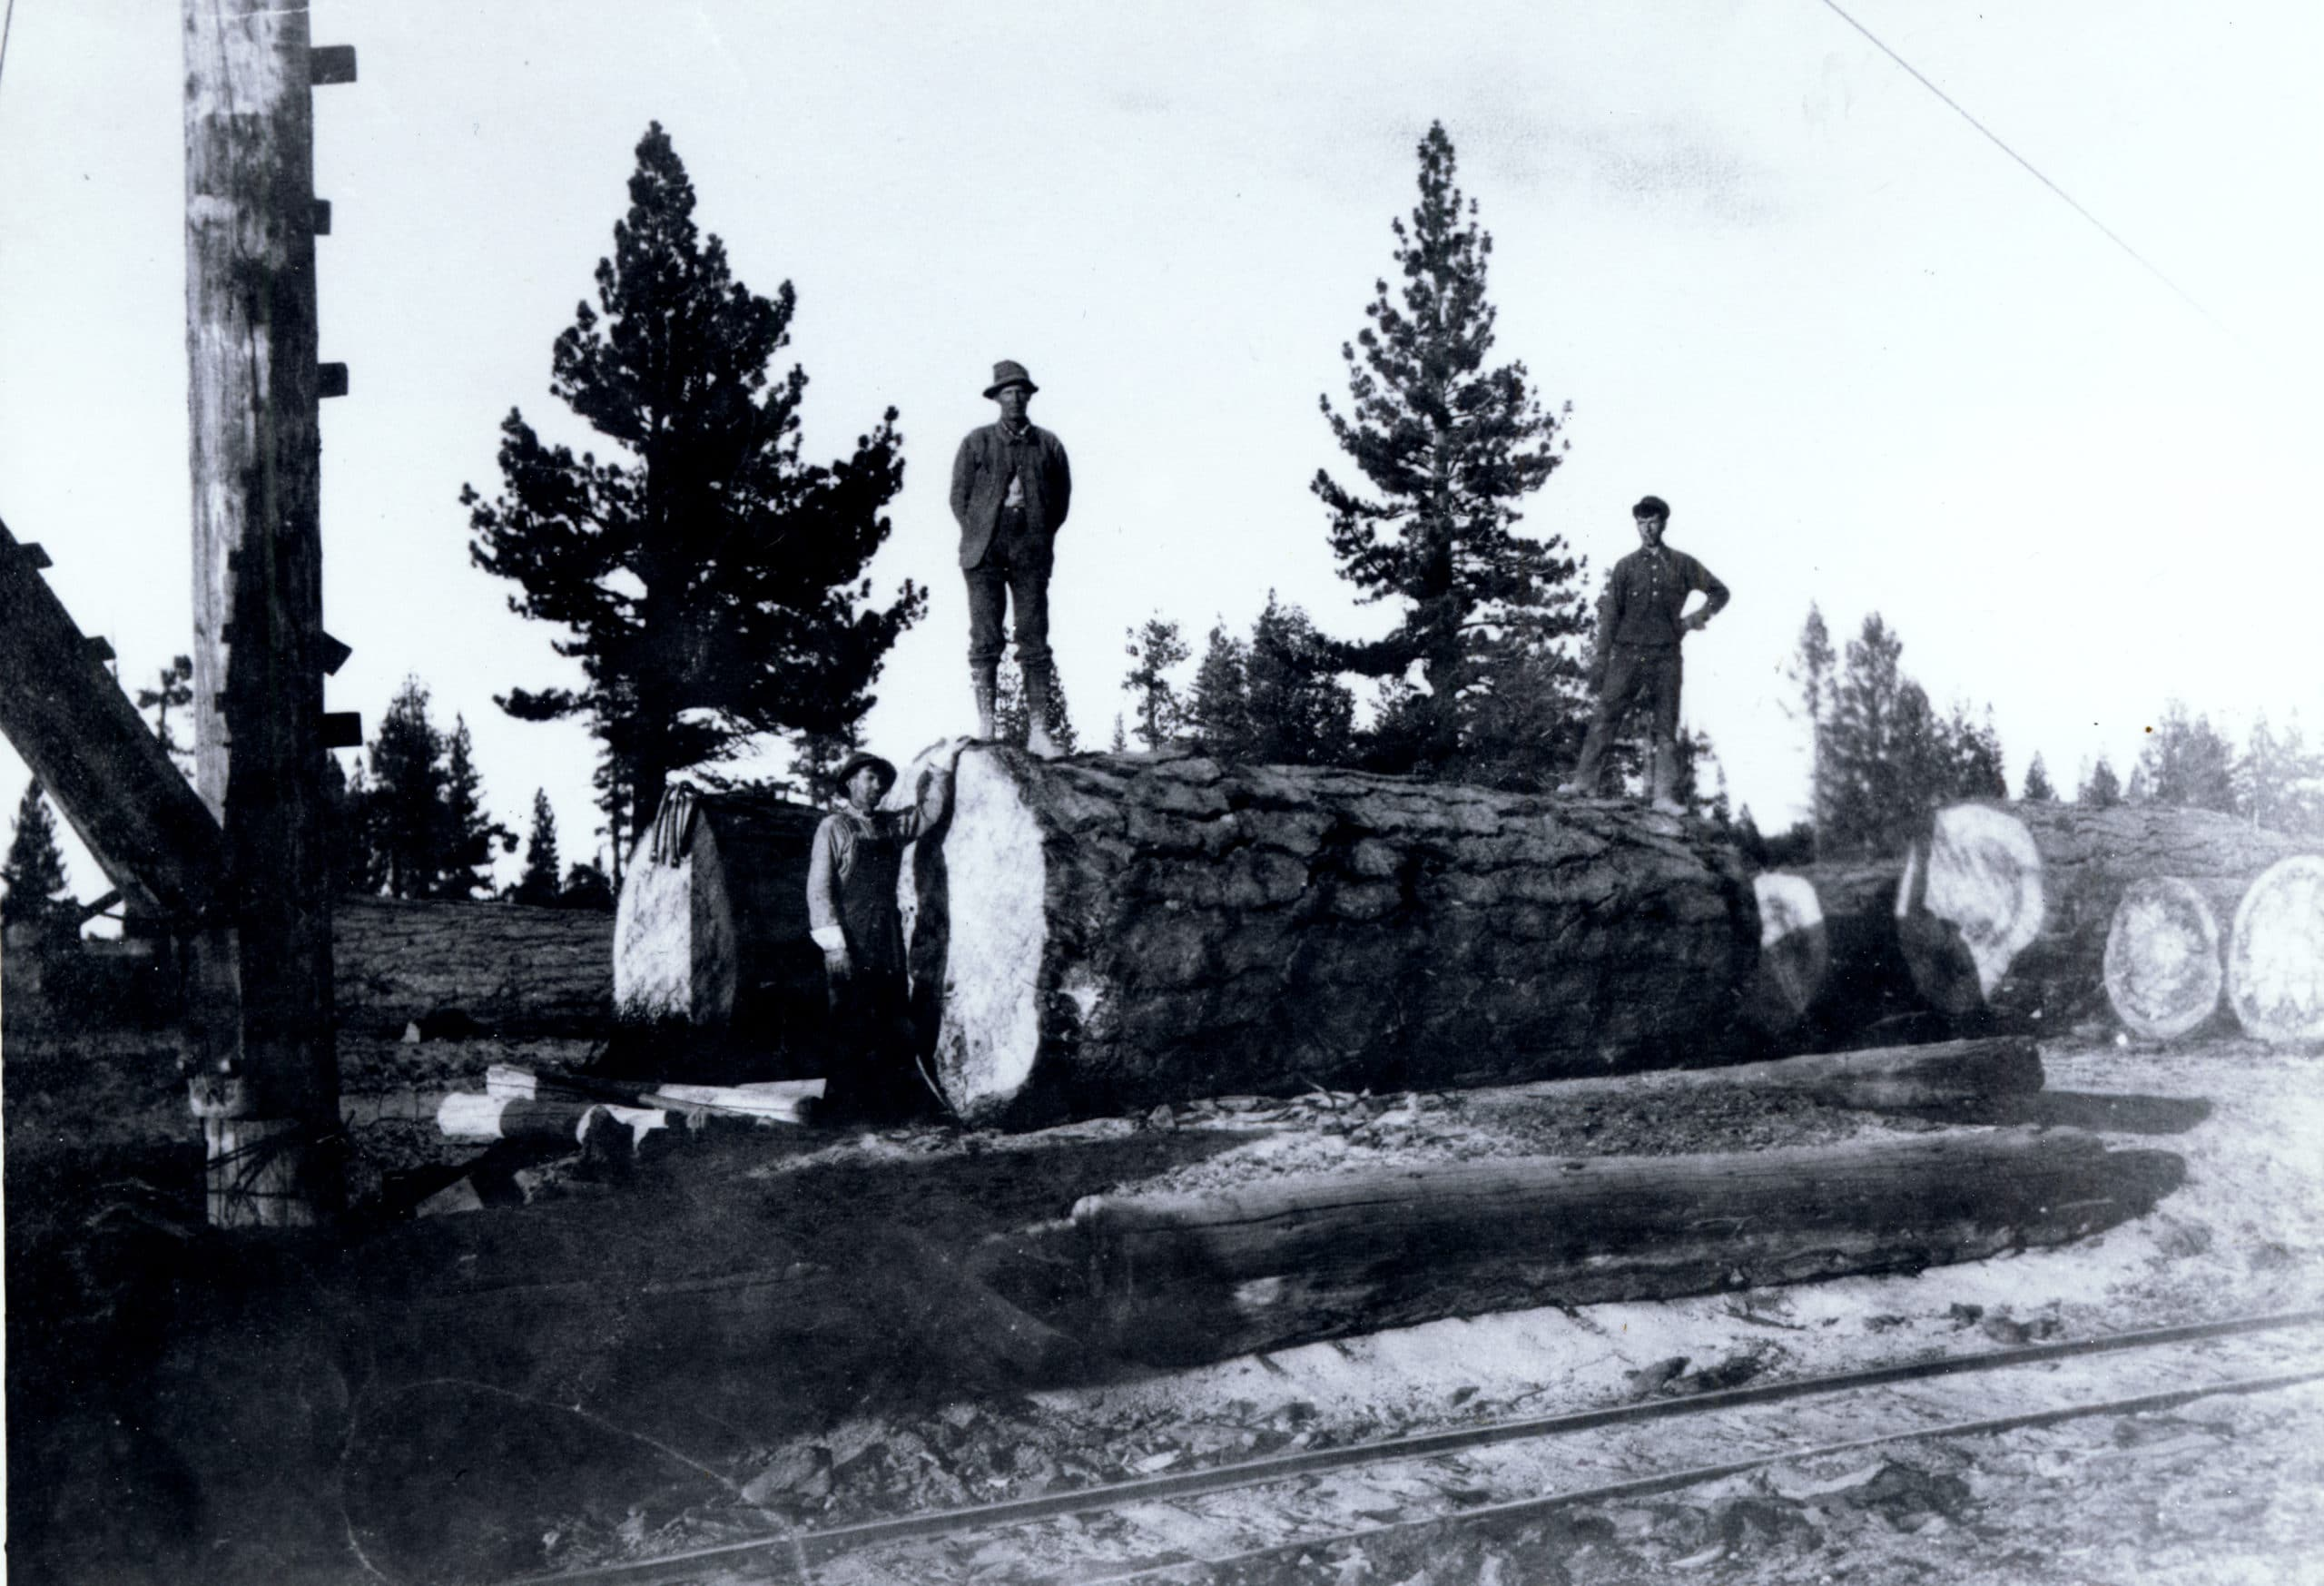 Black and white historical photograph of three people standing on or next to felled Jeffrey pine trees with diameters as tall as the people.